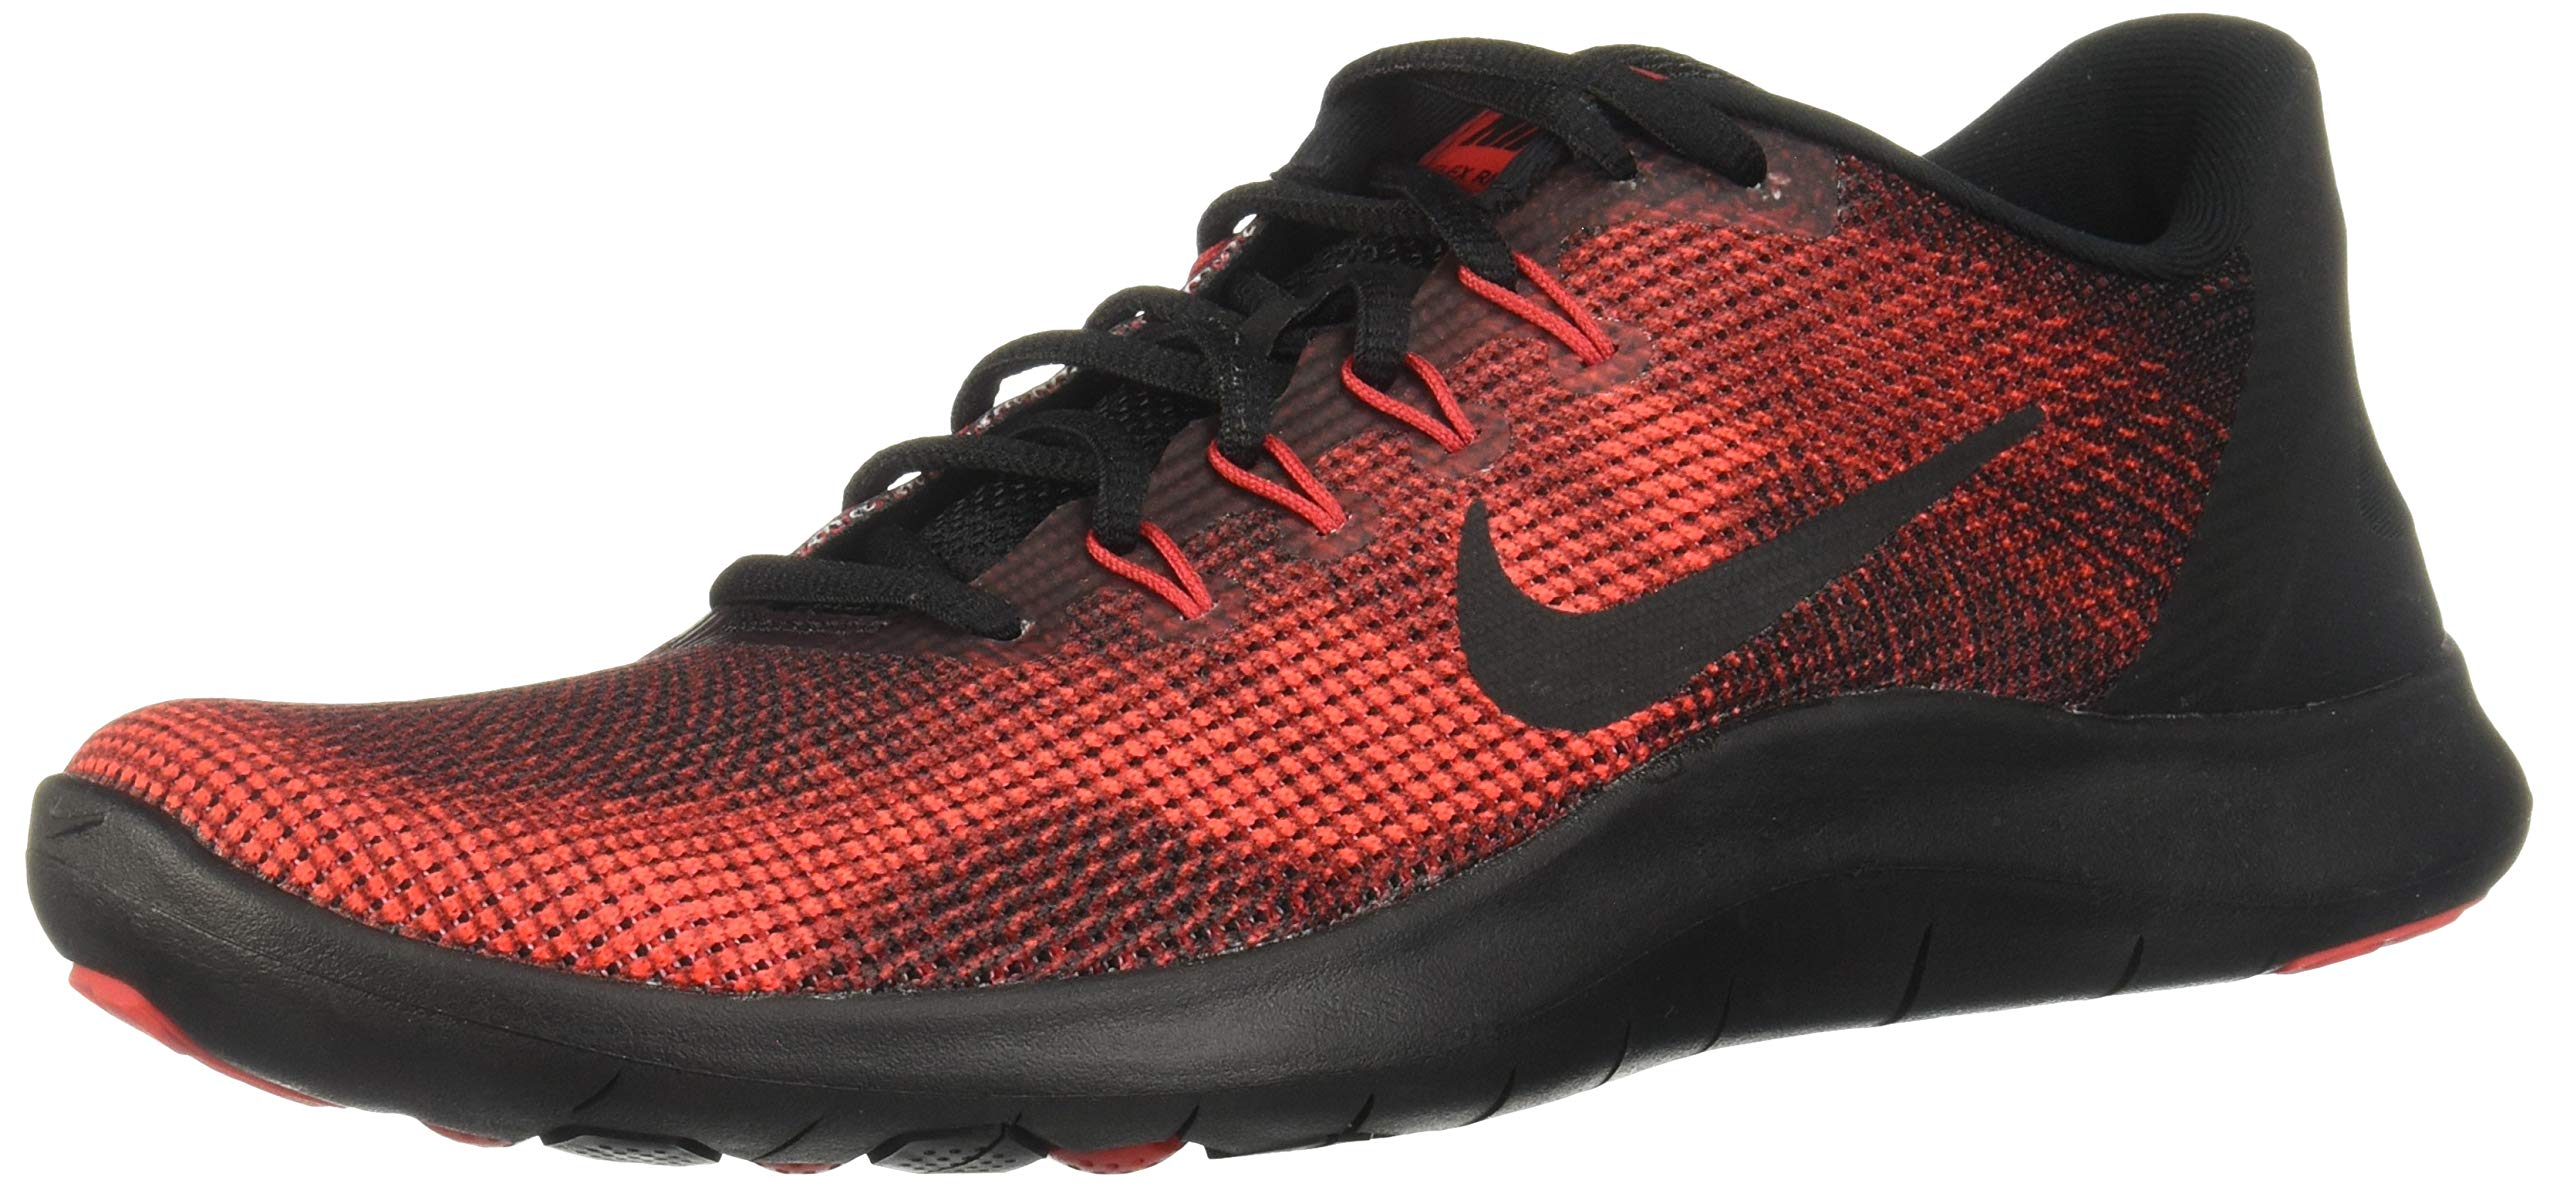 Nike Boy's Flex RN 2018 Running Shoe Black/University Red/Team Red Size 1.5 M US by Nike (Image #1)